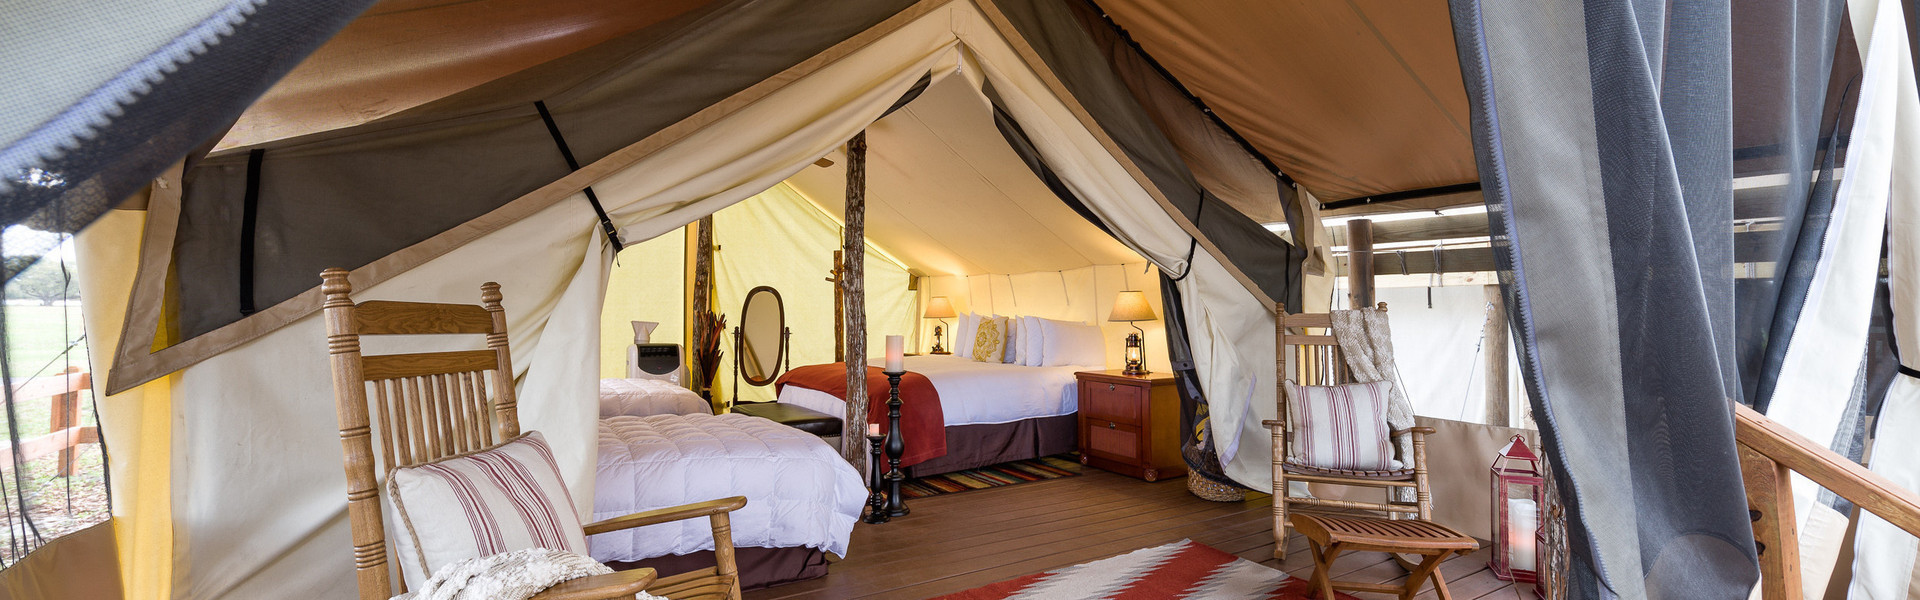 Luxury Glamping Florida | Westgate River Ranch Resort